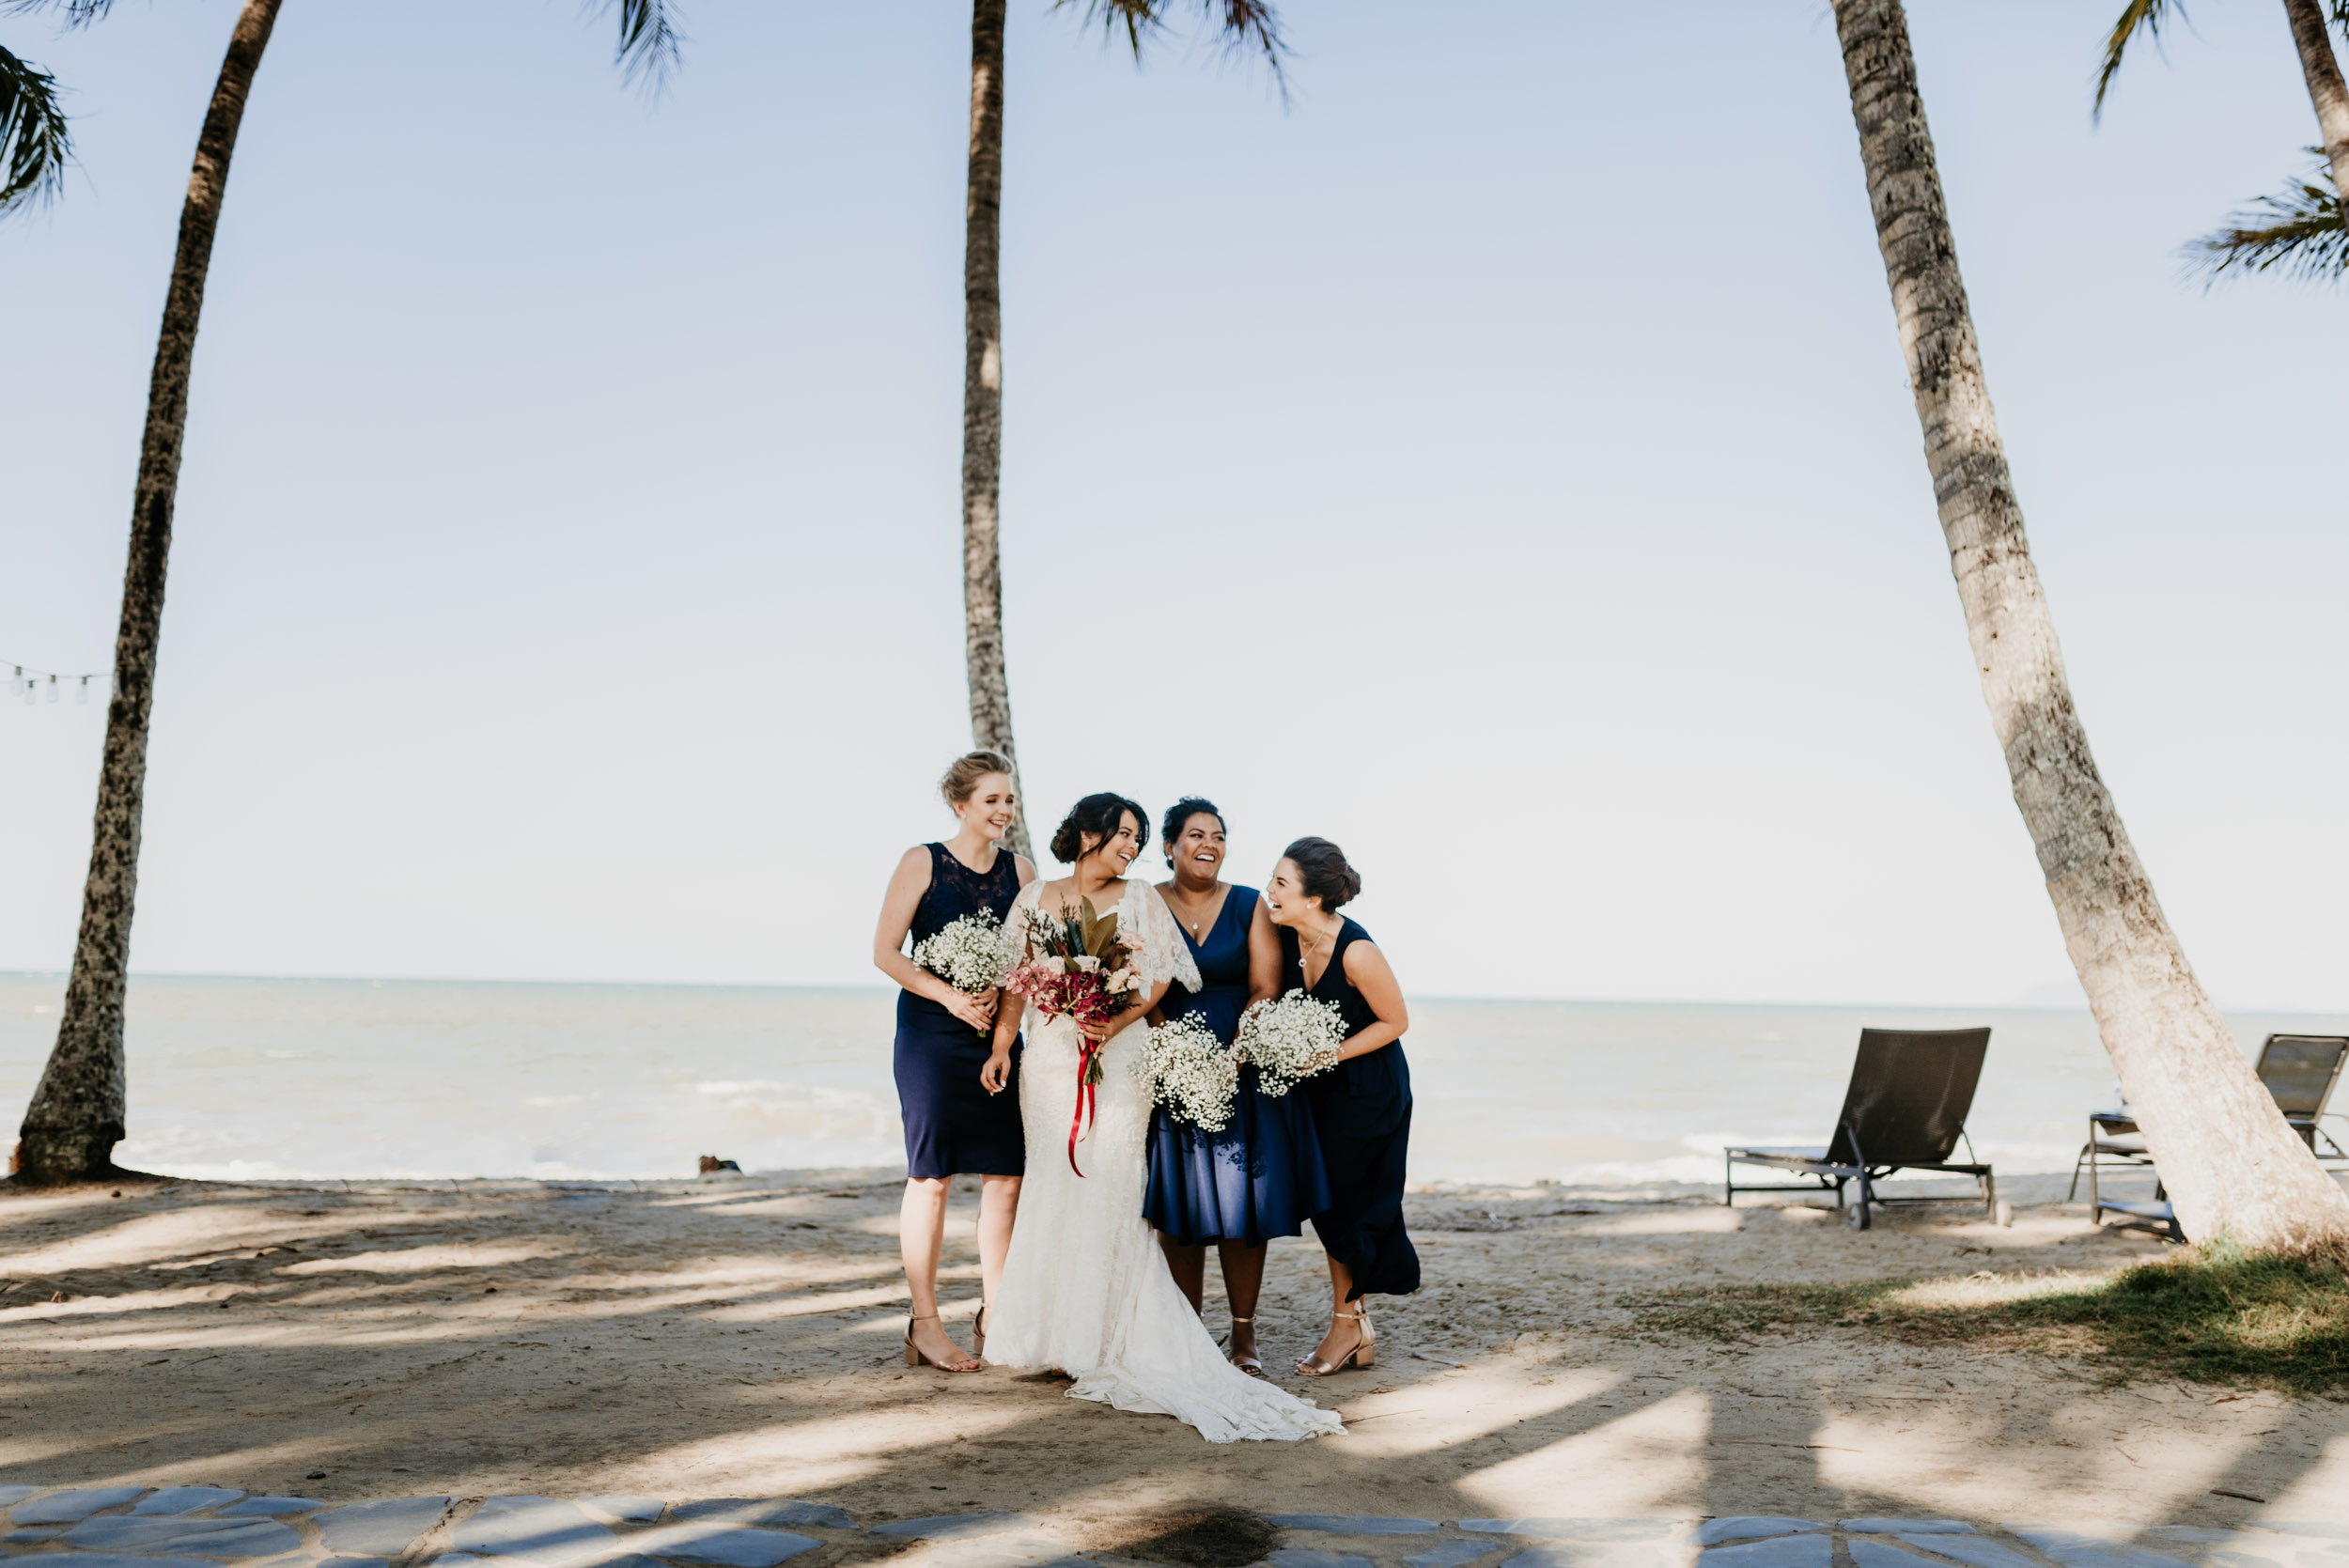 The Raw Photographer - Cairns Wedding Photographer - Palm Cove Ceremony - Pullman Reception - Dress White House Boutique-31.jpg